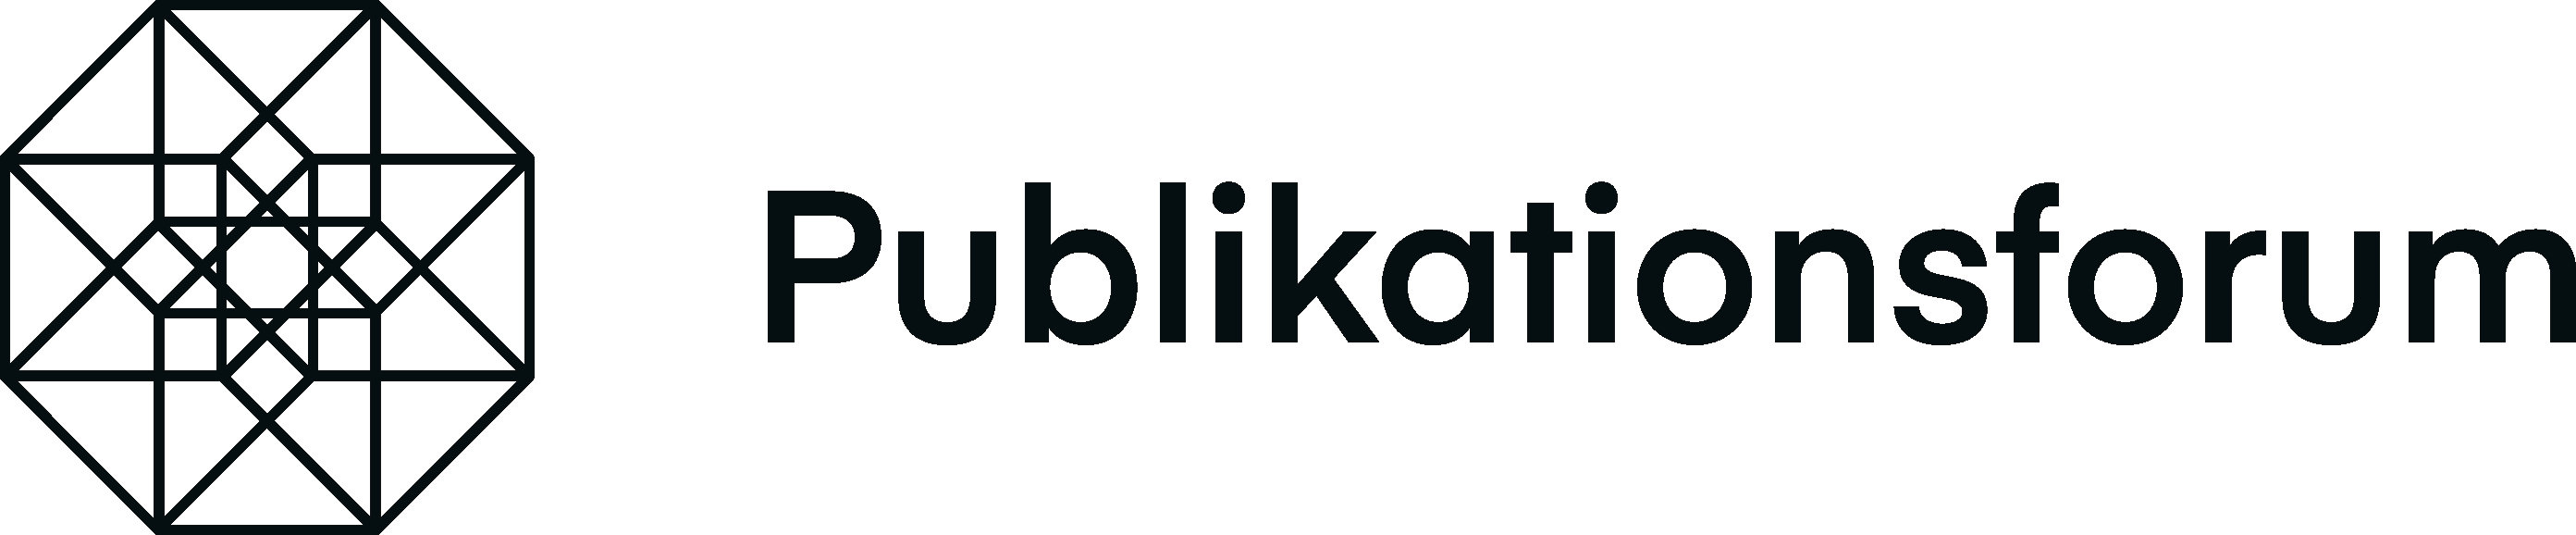 Publikationforum logo.